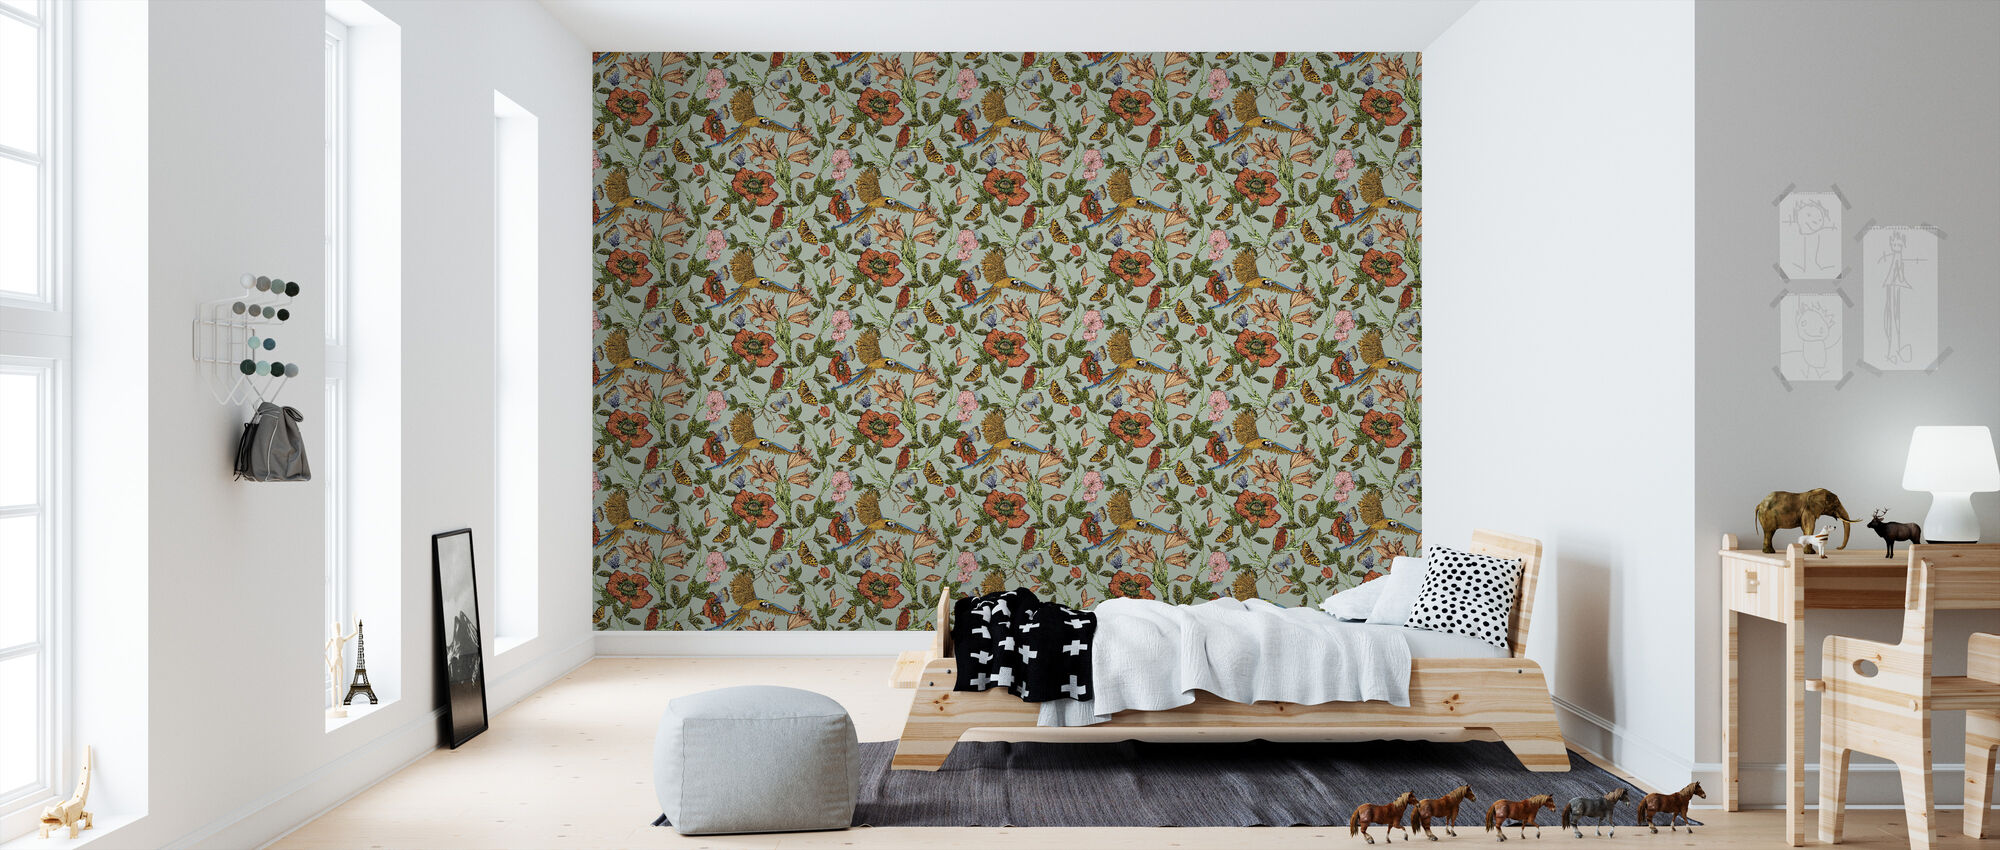 parrot turquoise einzigartige tapete h chster qualit t photowall. Black Bedroom Furniture Sets. Home Design Ideas